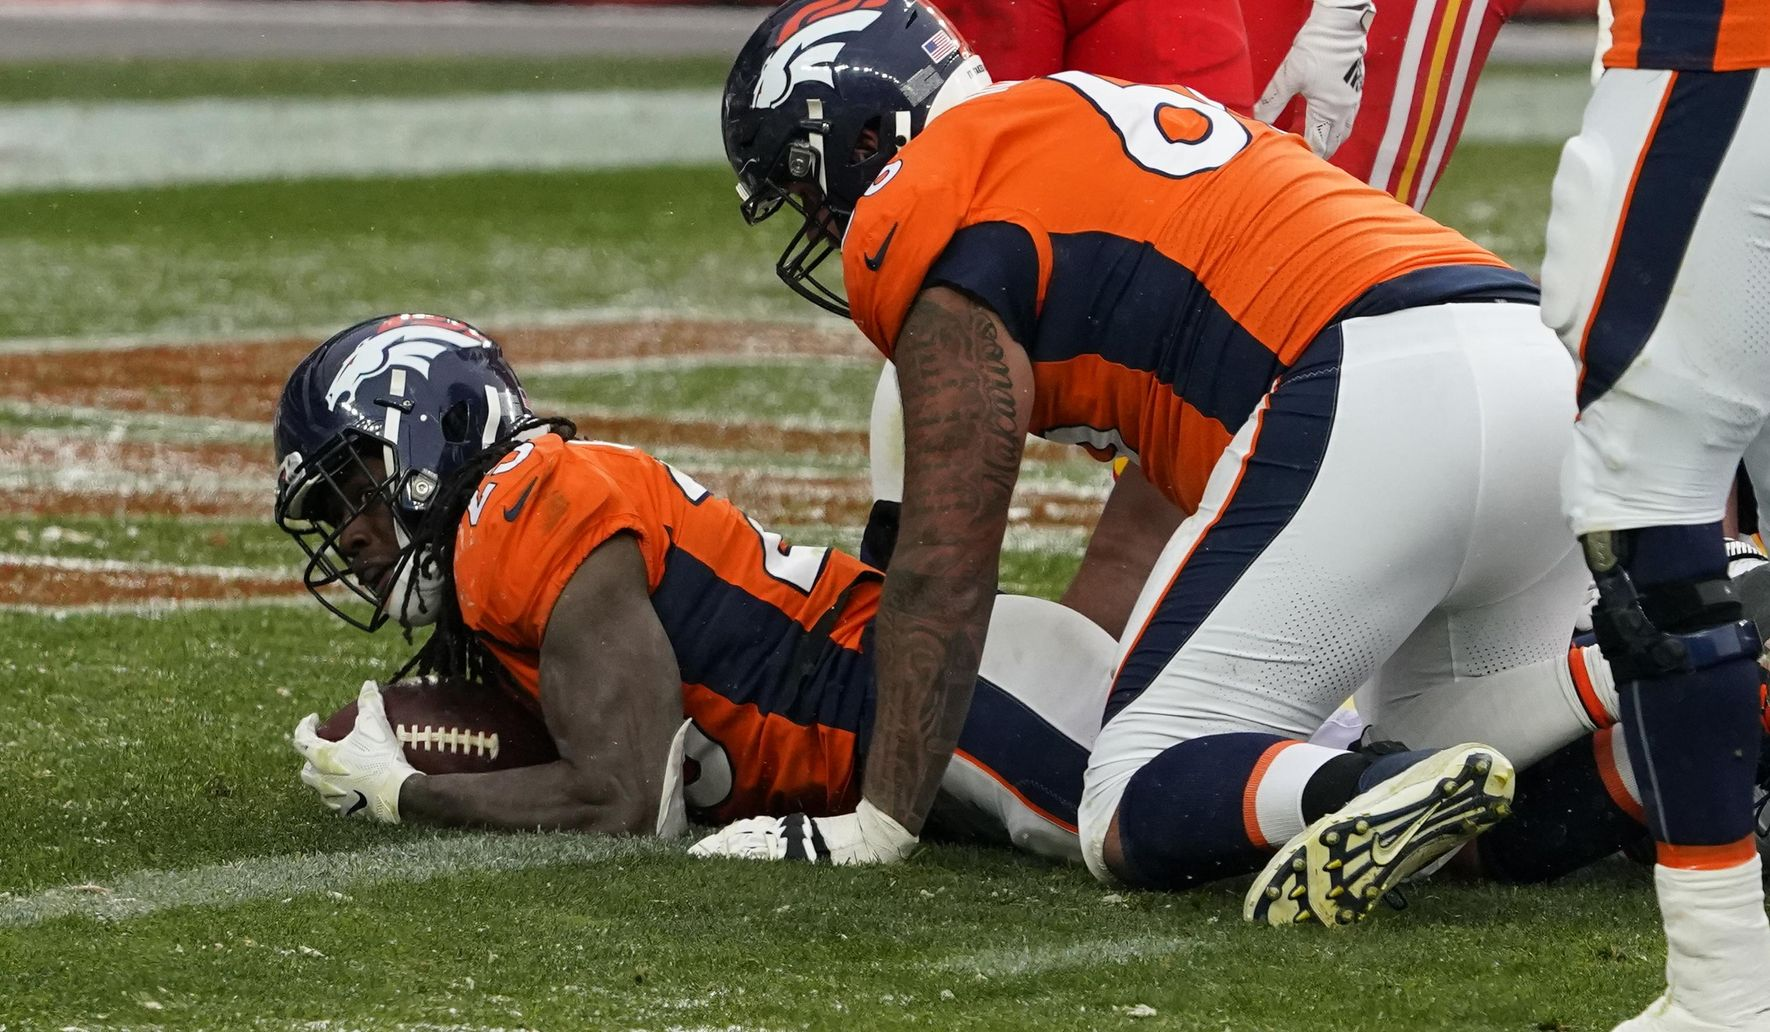 Chiefs_broncos_football_47798_c0-128-3046-1903_s1770x1032